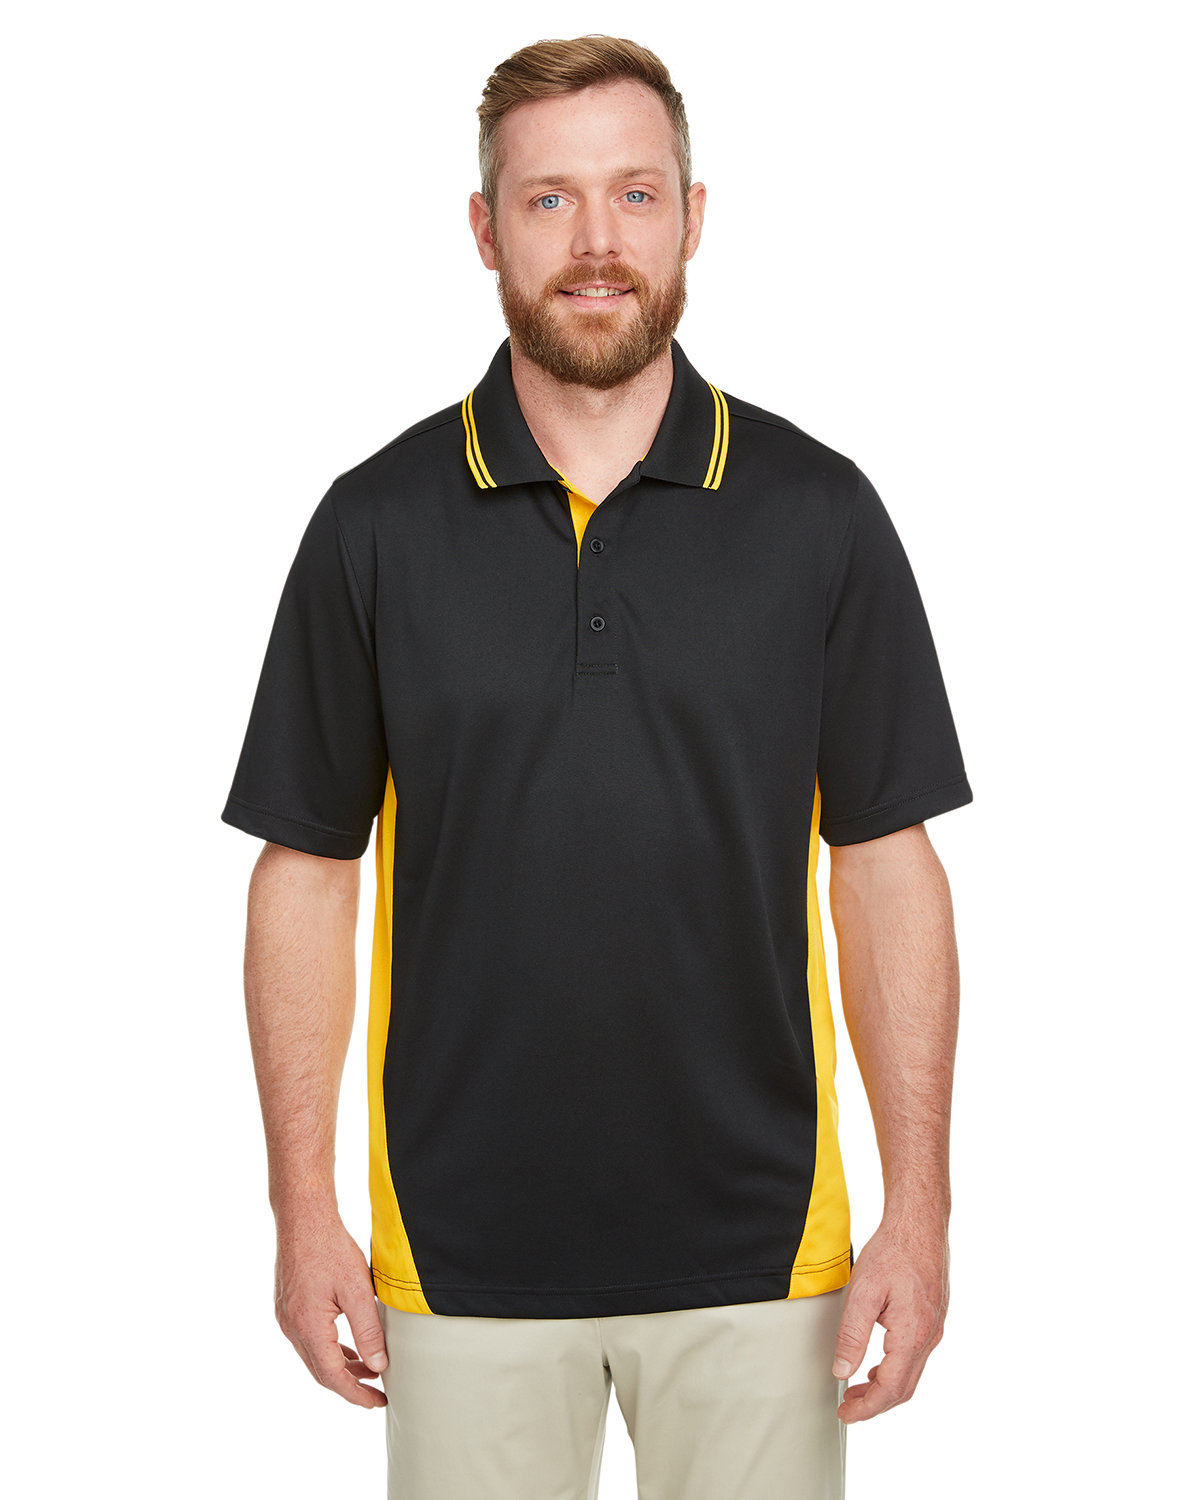 Harriton Men's Tall Flash Snag Protection Plus IL Colorblock Polo BLACK/ SNRY YLLW